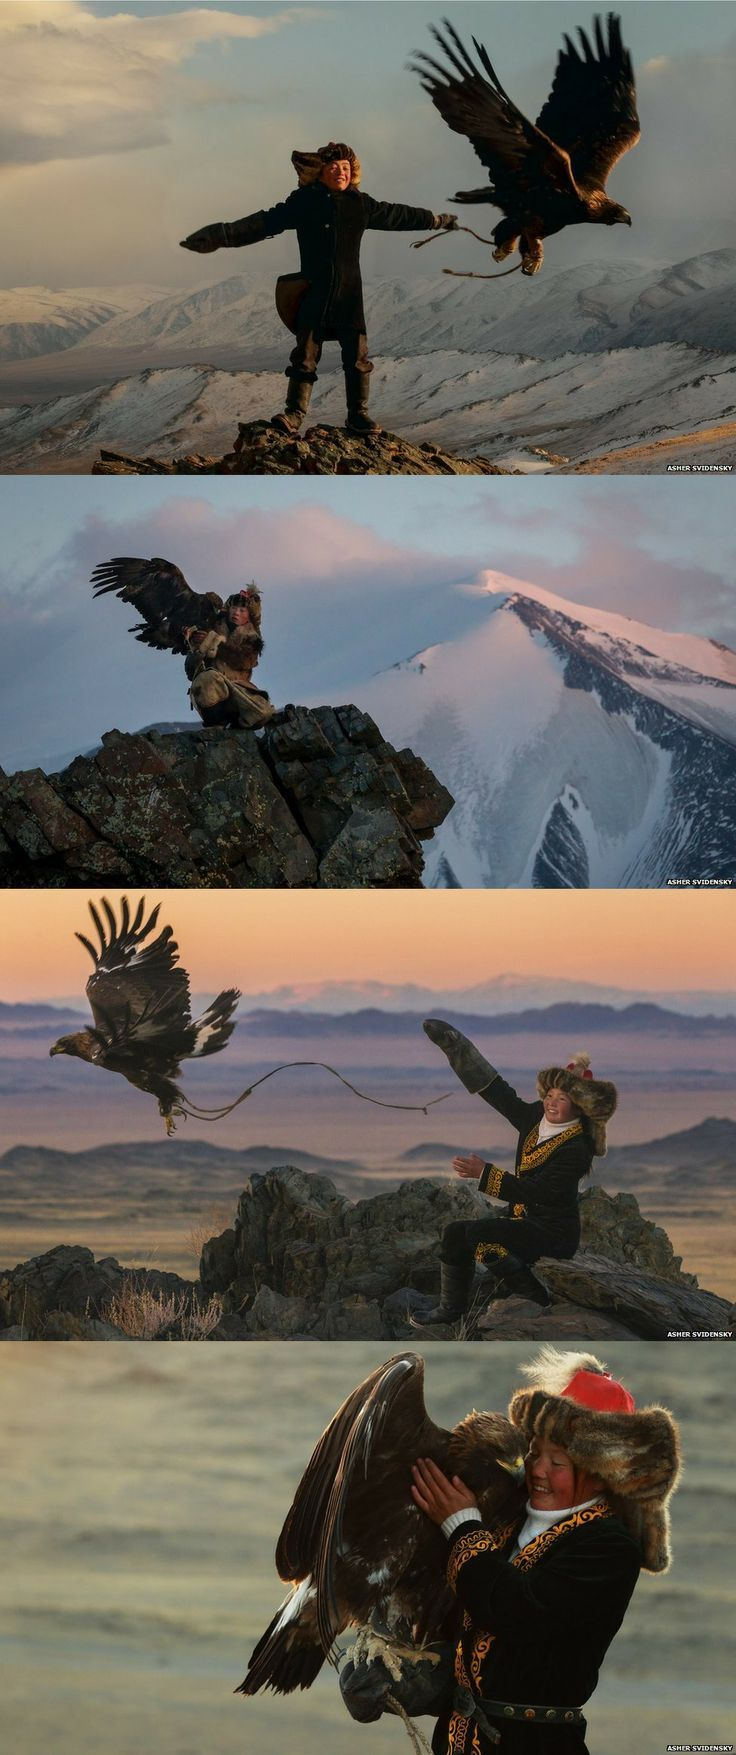 The Kazakhs of the Altai mountain range in western Mongolia are the only people that hunt with golden eagles, and today there are around 400 practising falconers. Ashol-Pan, the daughter of a particularly celebrated hunter, may well be the country's only apprentice huntress. http://www.bbc.com/news/magazine-26969150